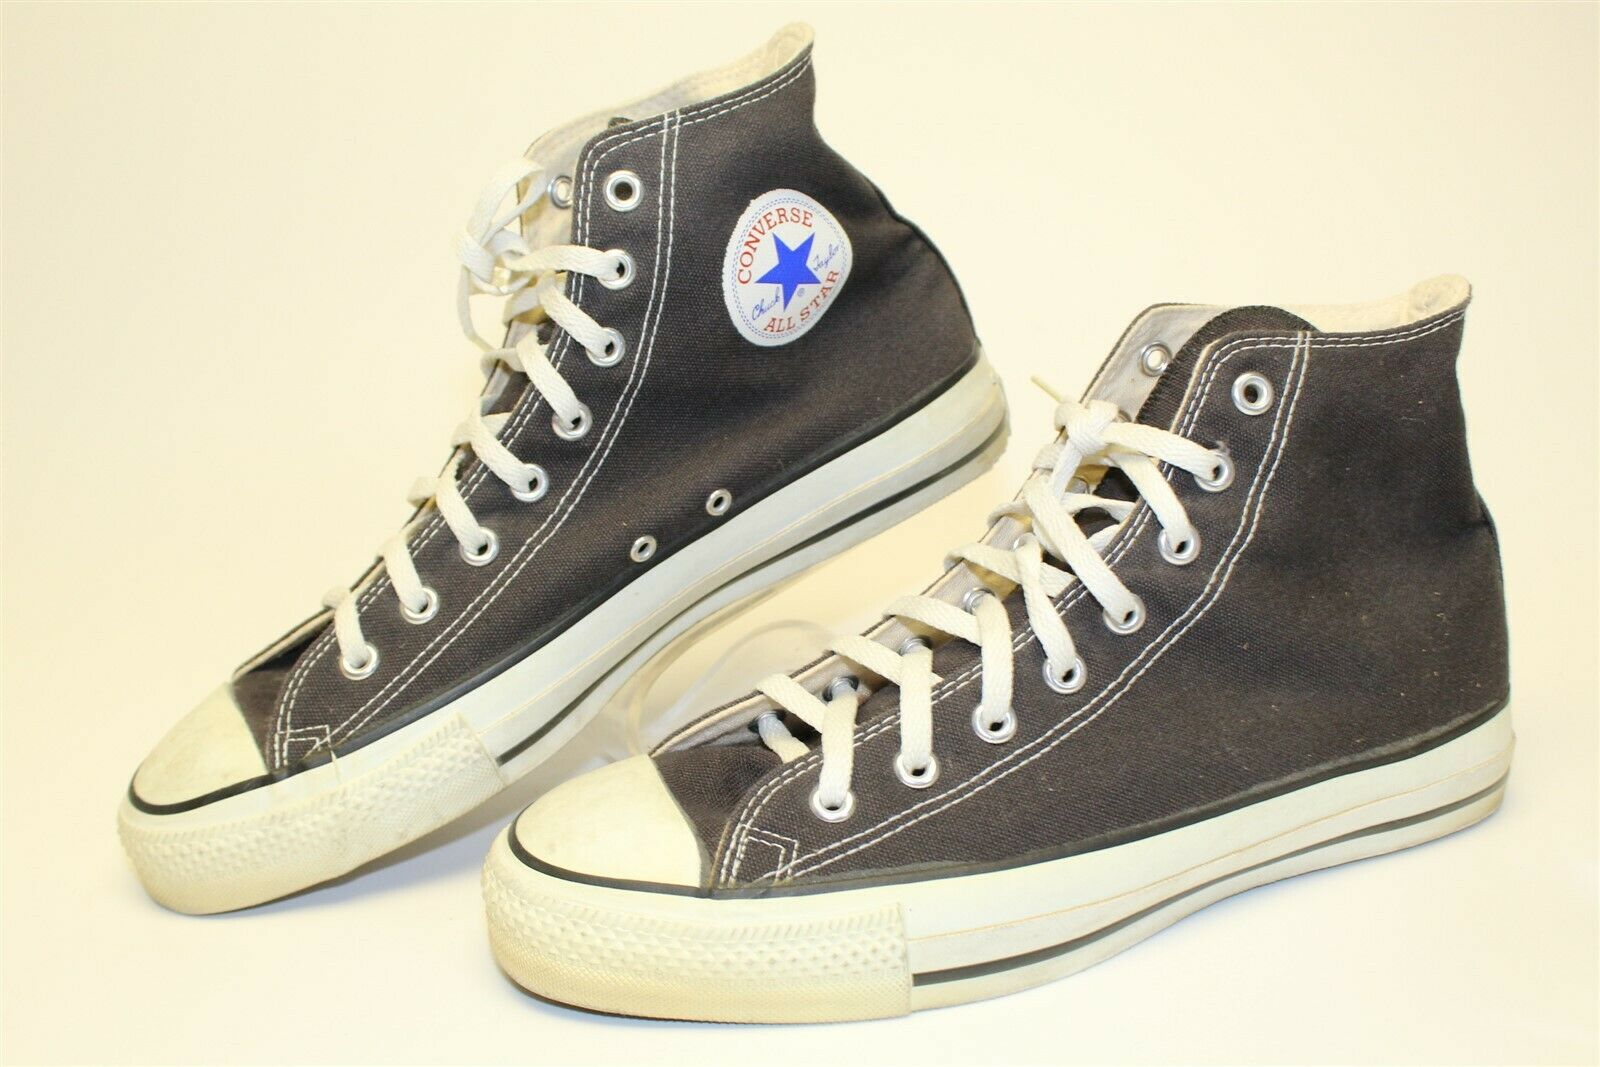 Converse All Star Mens 10.5 High Top Lace Up Vintage Sneakers Made in USA Rare